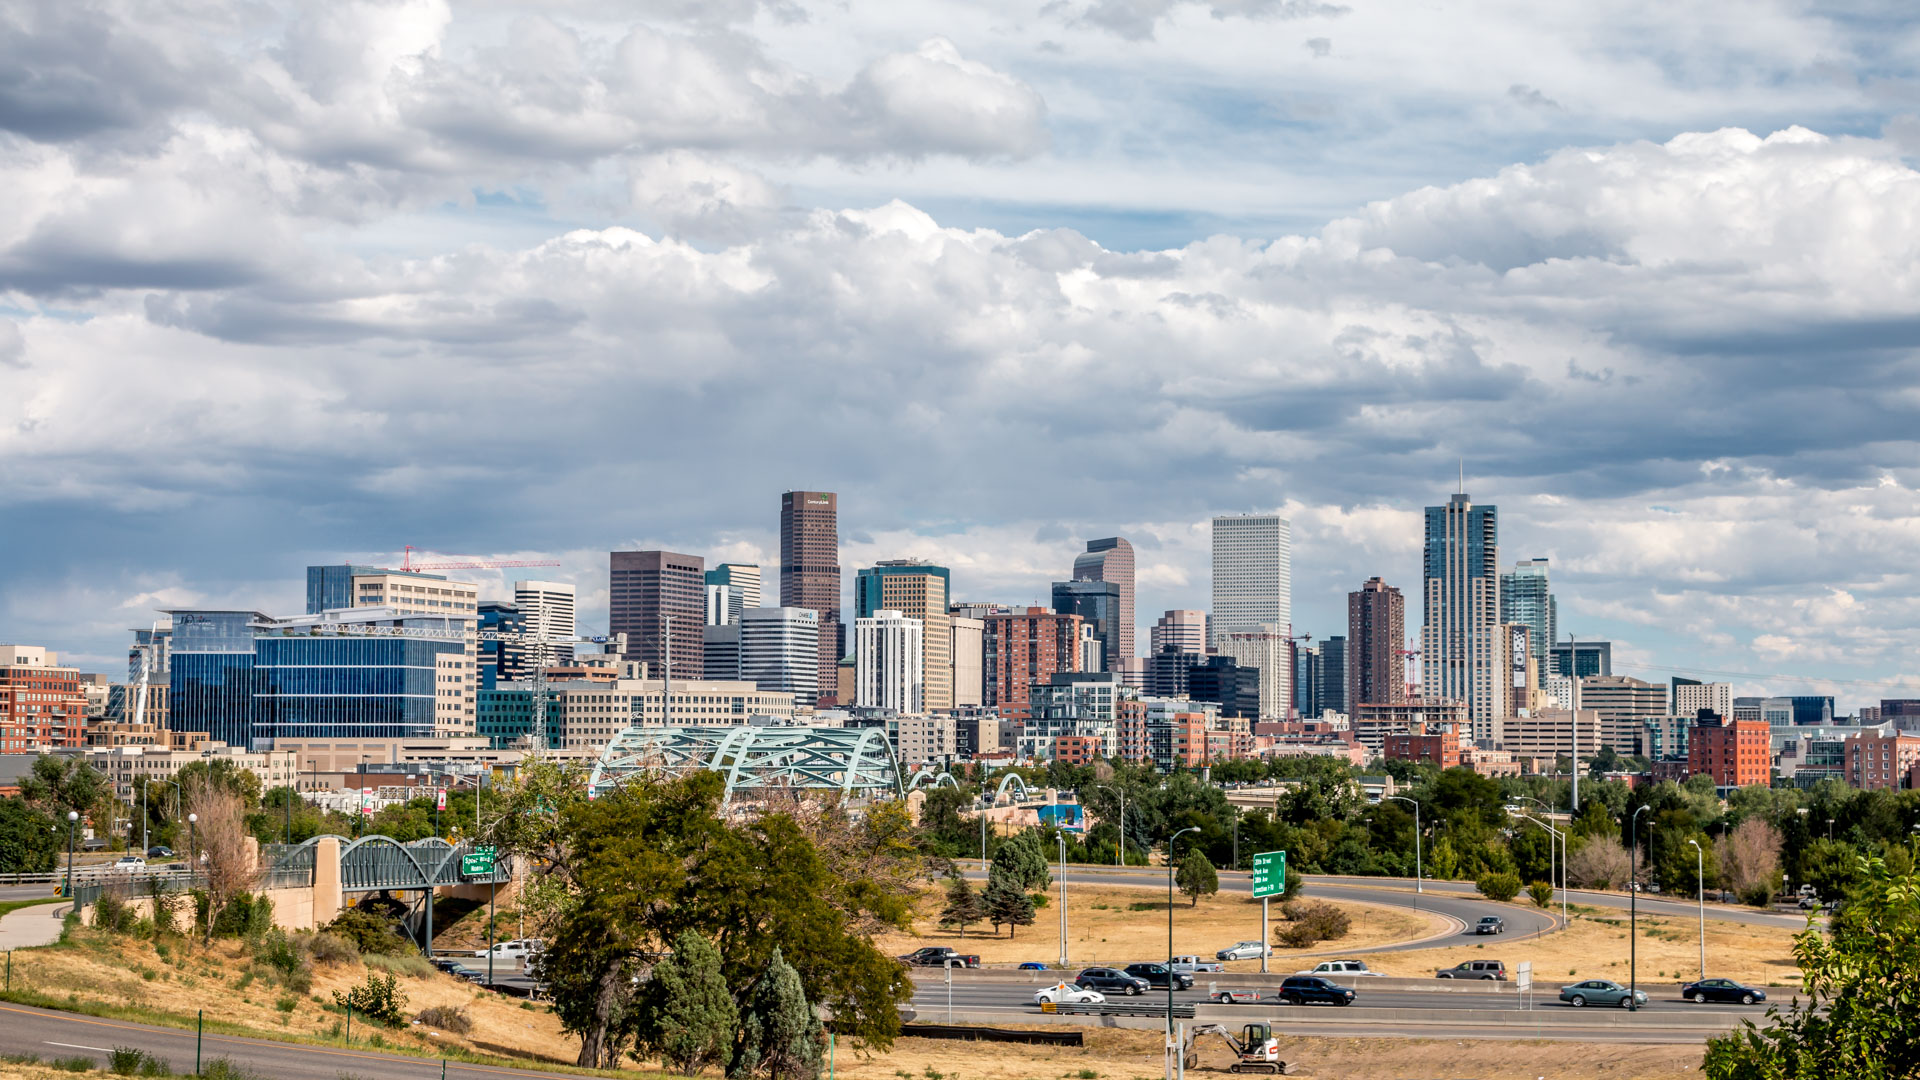 Denver is full of many fun activities in the summertime.